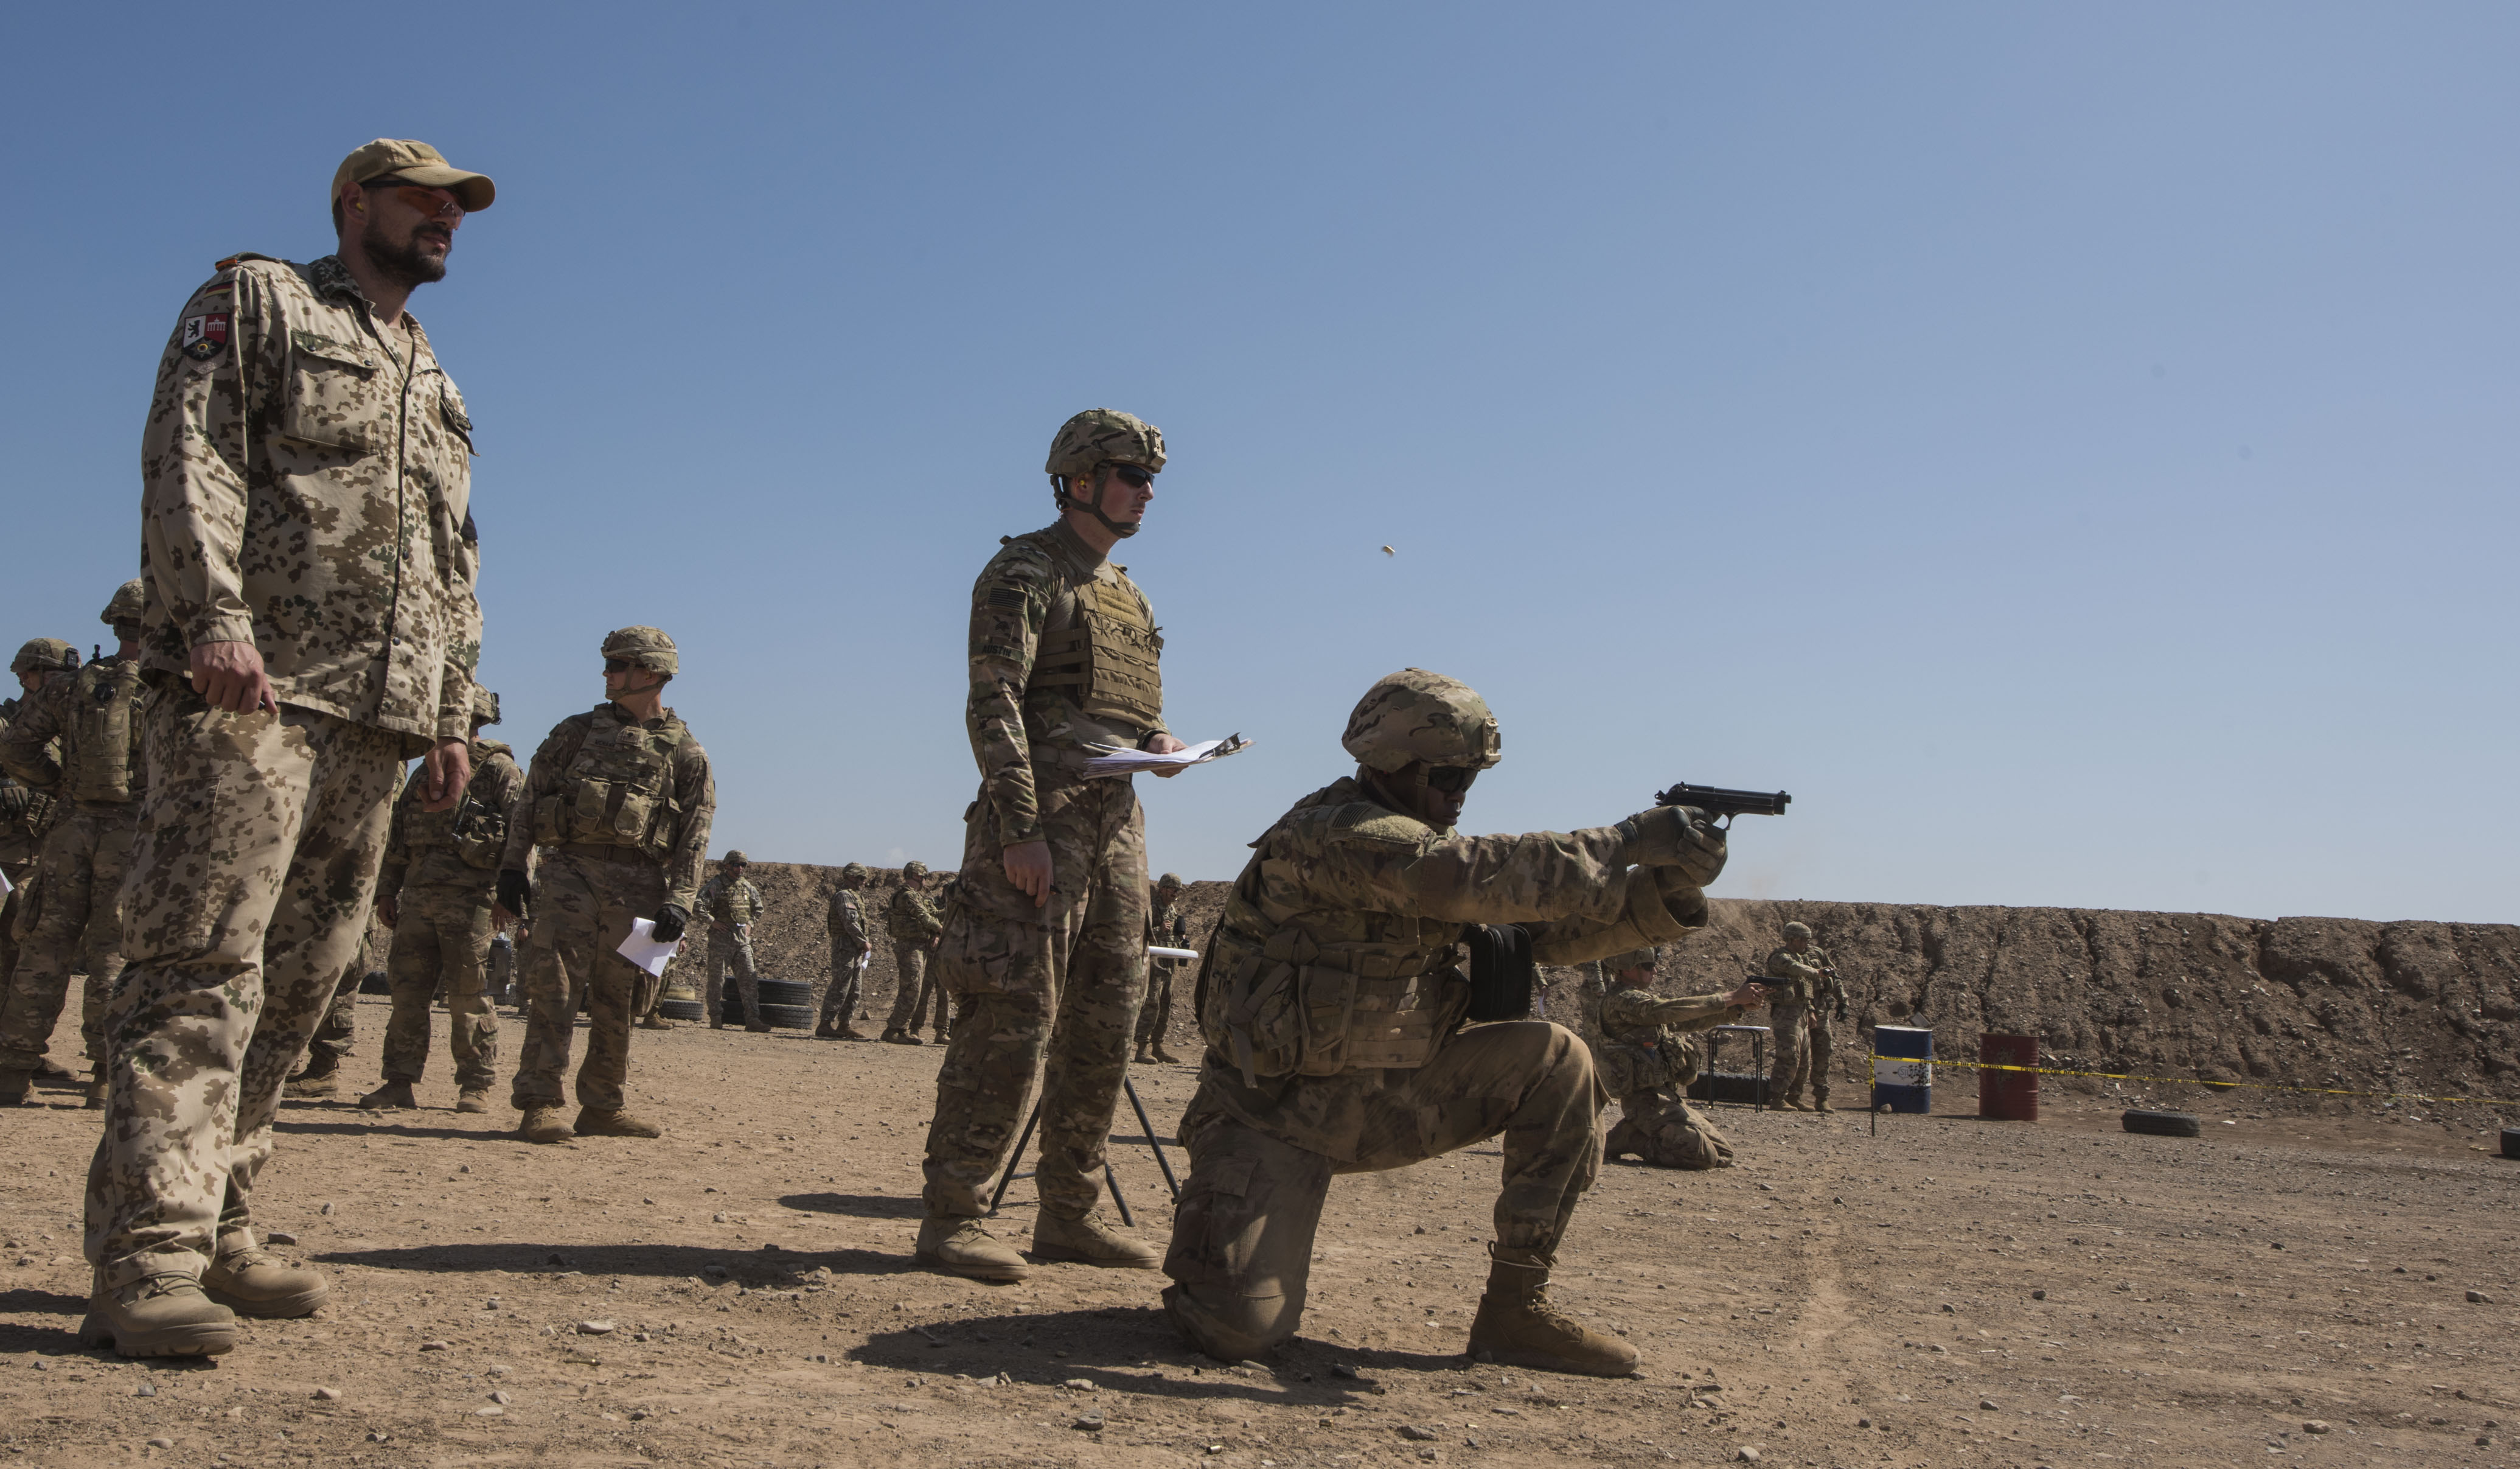 U.S. service members assigned to Combined Joint Task Force-Horn of Africa complete a weapons qualification test as part of the competition to earn the German Armed Forces Proficiency Badge (GAFPB), a decoration of the Armed Forces of the Federal Republic of Germany, at the Djiboutian National Police firing range in Djibouti City, Djibouti, Nov. 29, 2017. Competitors must complete a physical fitness test, uniformed swim, weapons qualification, ruck march, first aid course and chemical warfare course to be awarded the GAFPB, one of the few foreign allied military awards that U.S. service members are authorized to wear. (U.S. Air National Guard photo by Staff Sgt. Allyson L. Manners)